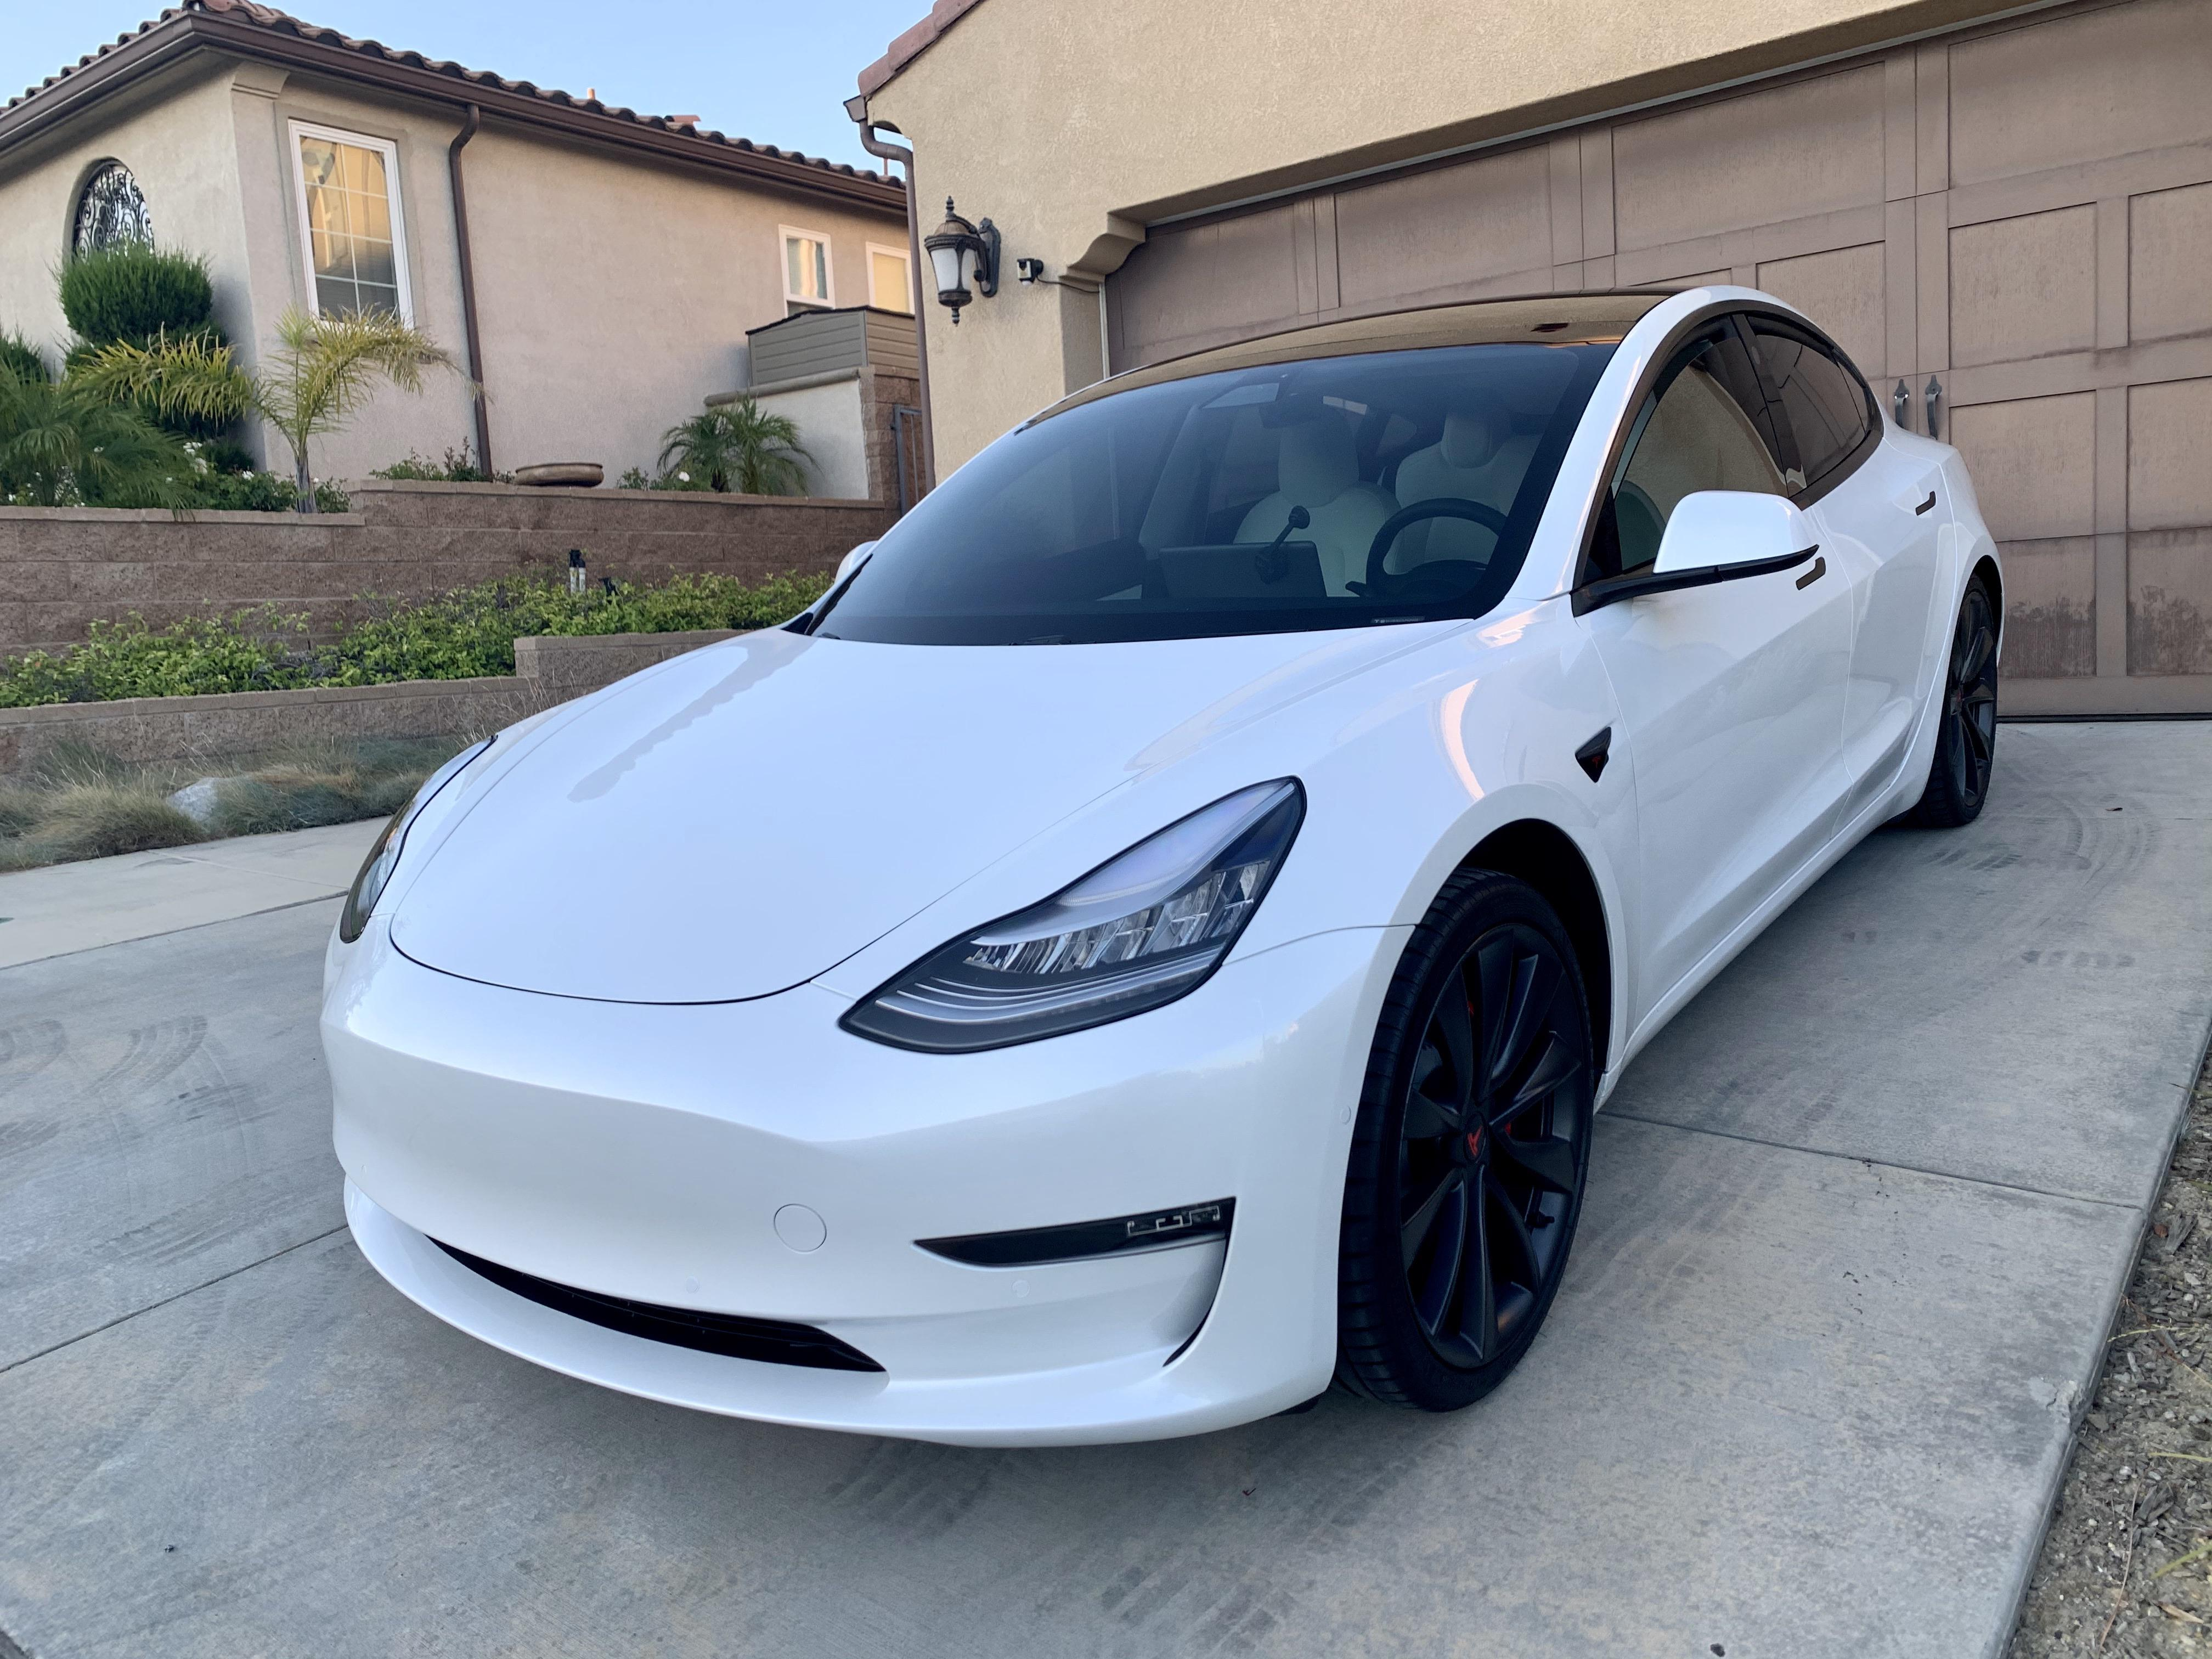 Front Windshield Ceramic 50 Tint Added Today Roof Too Rest Of The Windows Already Had Non Ceramic Tint Teslamodel3